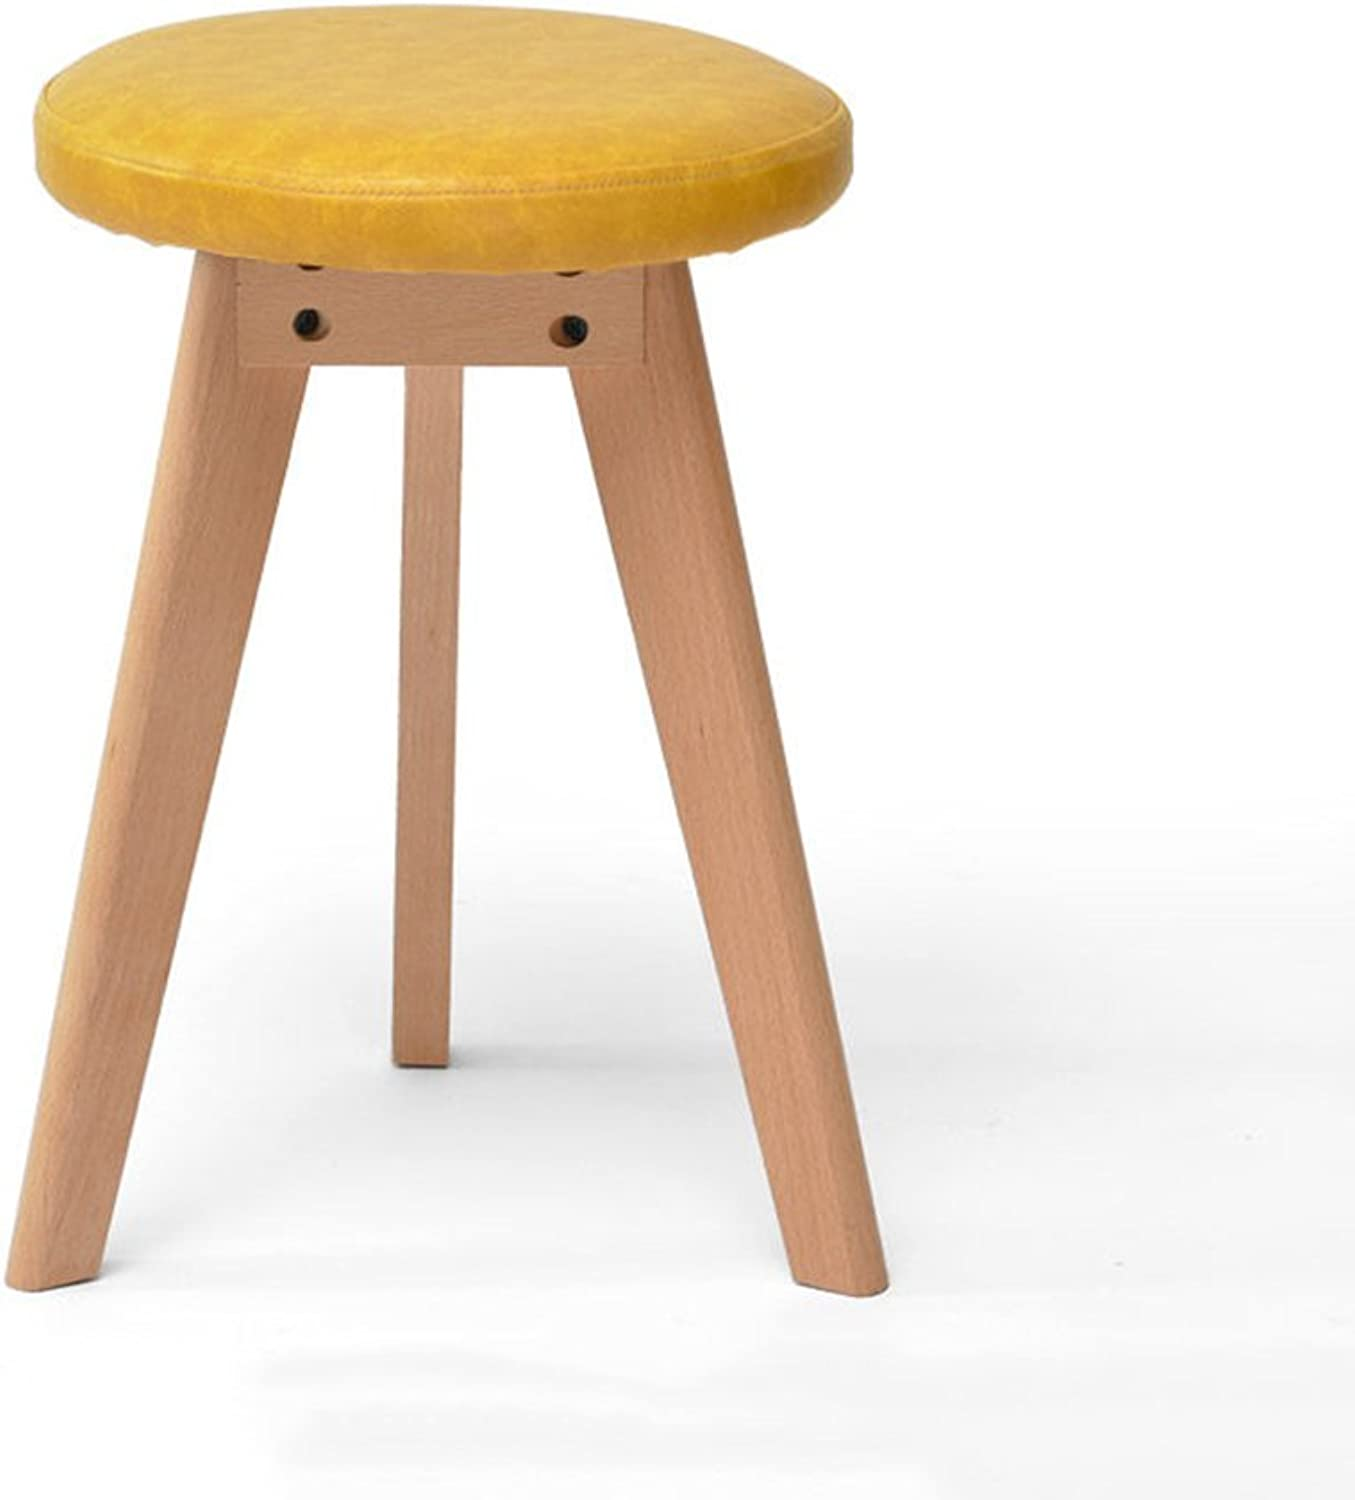 JCOCO Stool - Solid Wood stool Fashion stool Fabric Makeup stool Home Table stool Nordic Small Bench Artificial Leather stool (Two Optional) 45  40cm (color   Yellow)